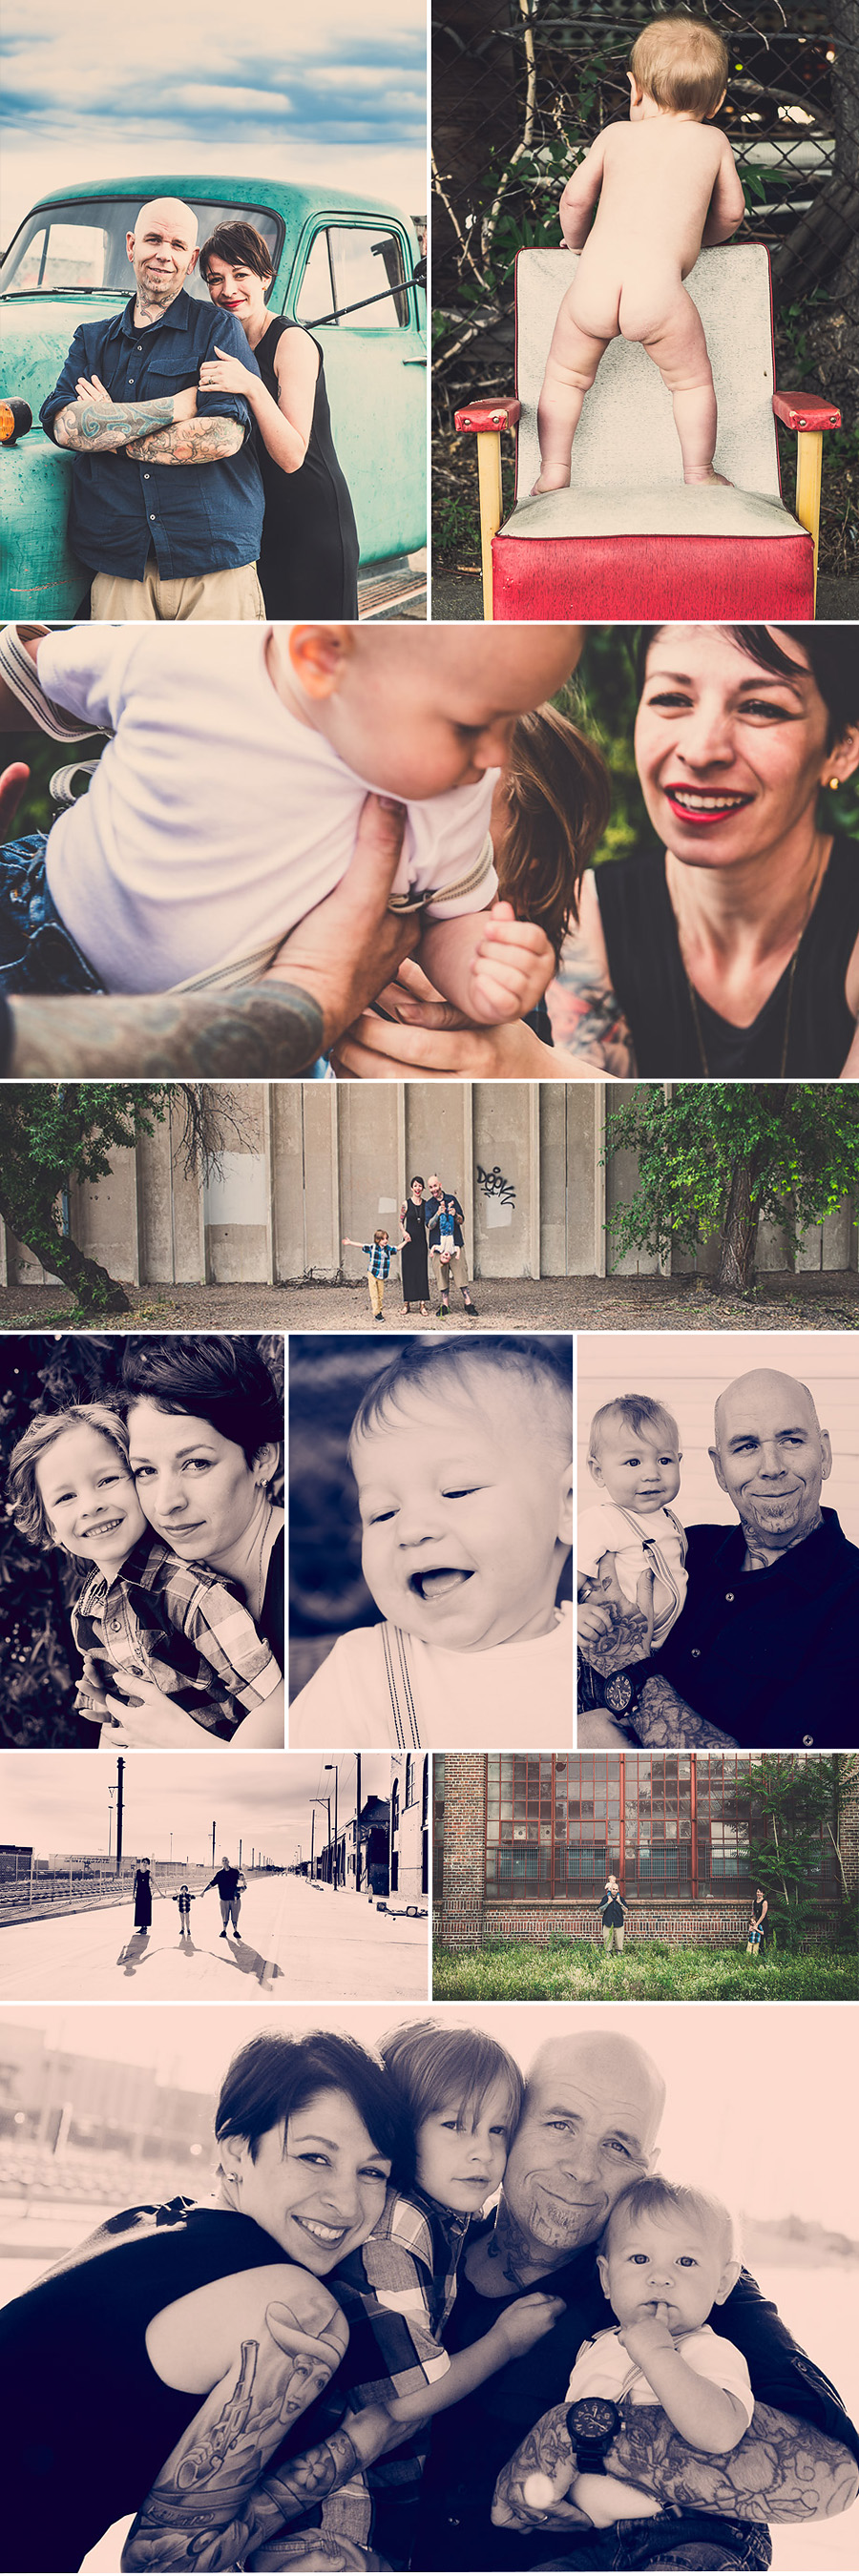 Denver RiNo Family Photography Collage Hydle 1